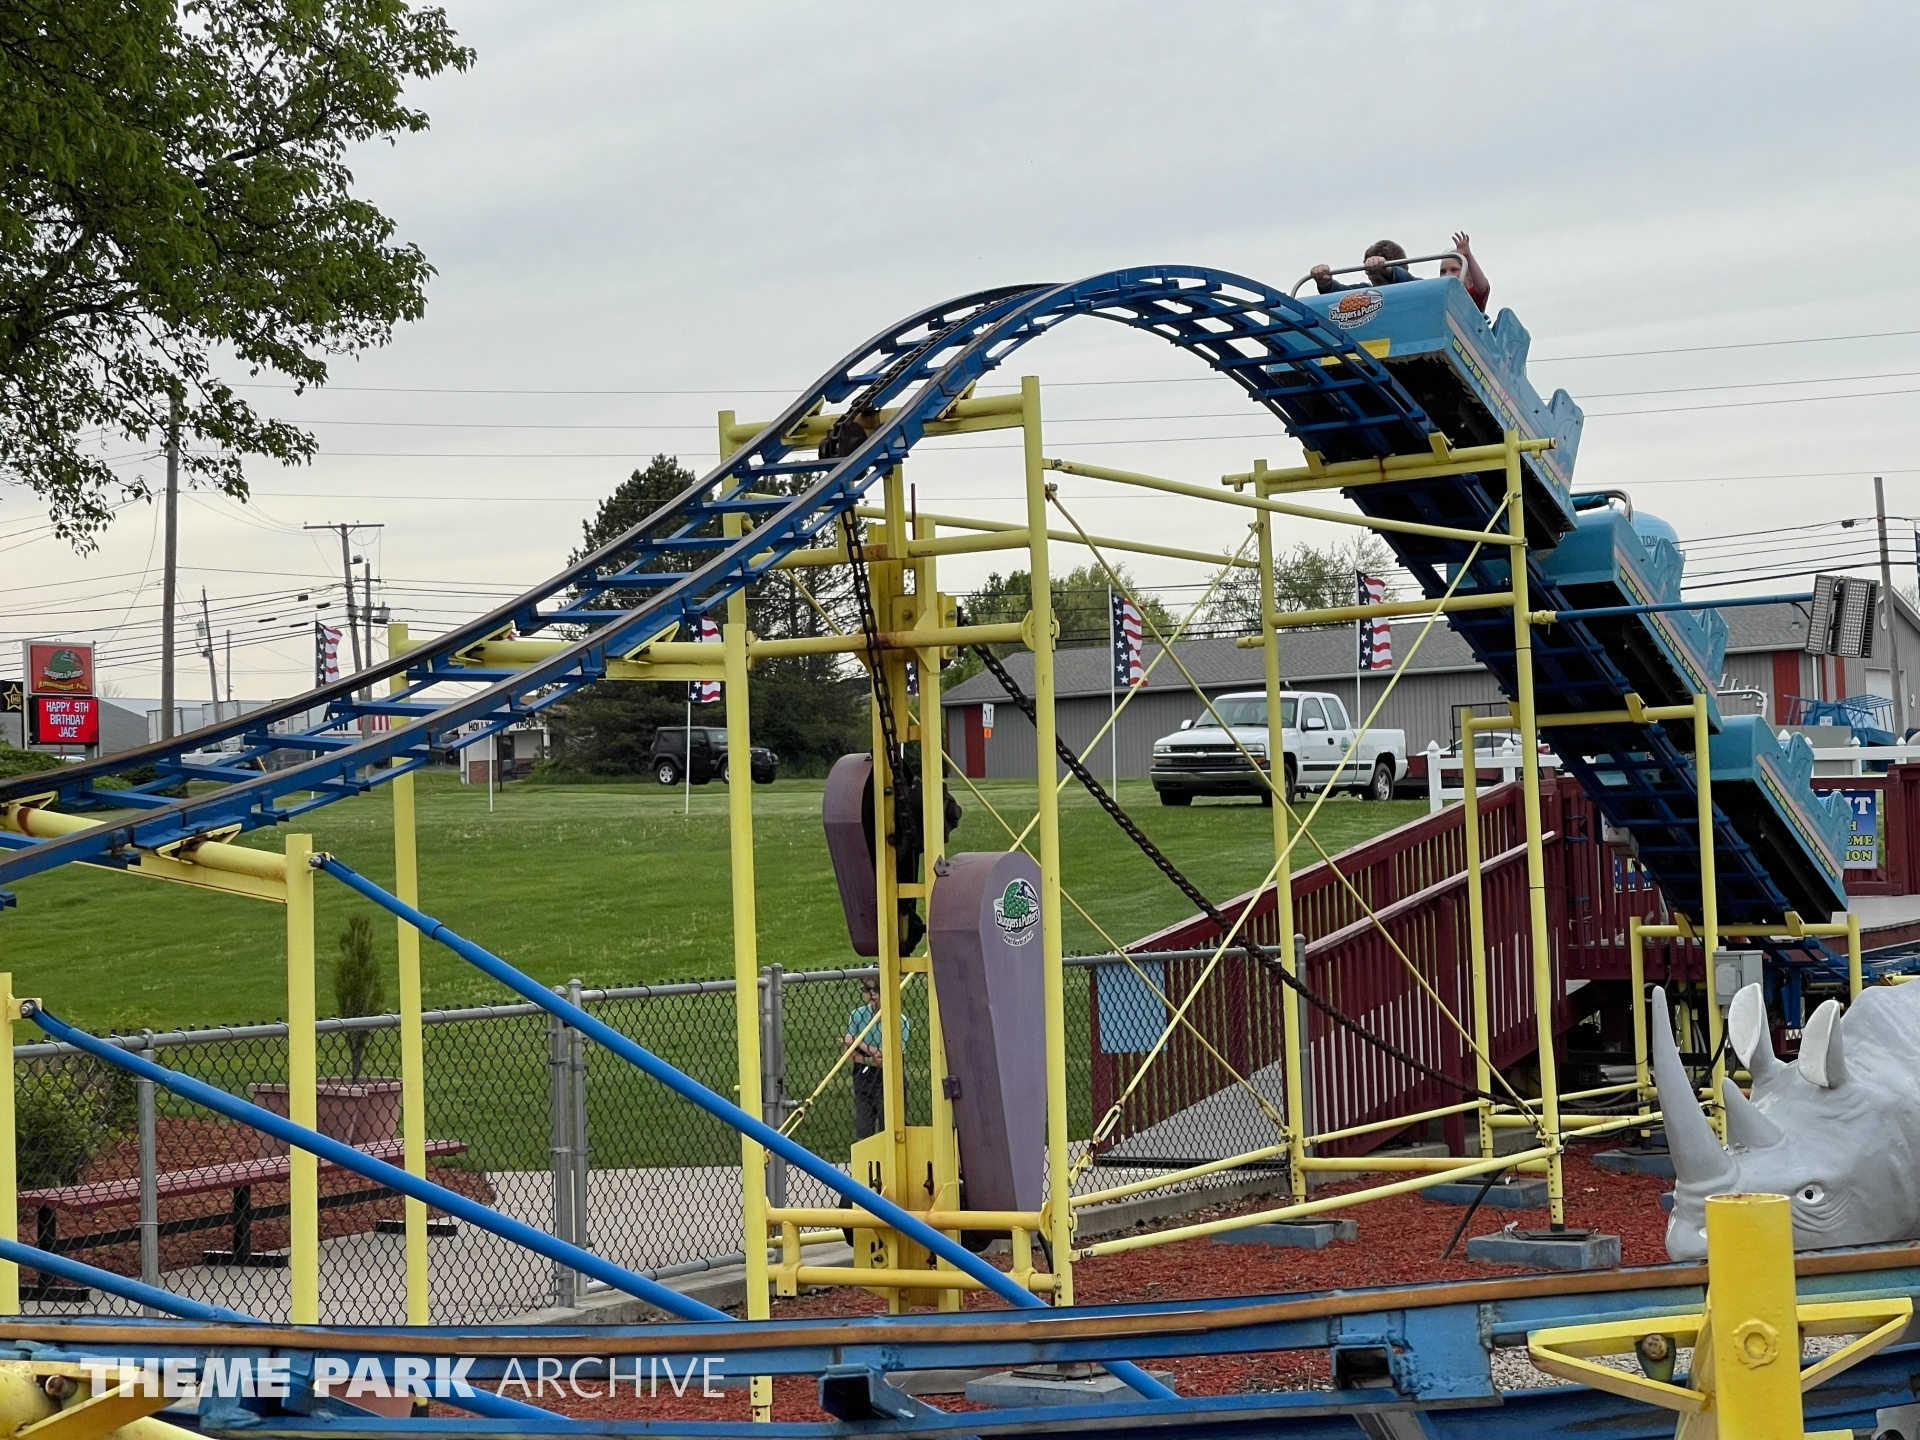 Lil Dipper Roller Coaster at Sluggers & Putters Amusement Park